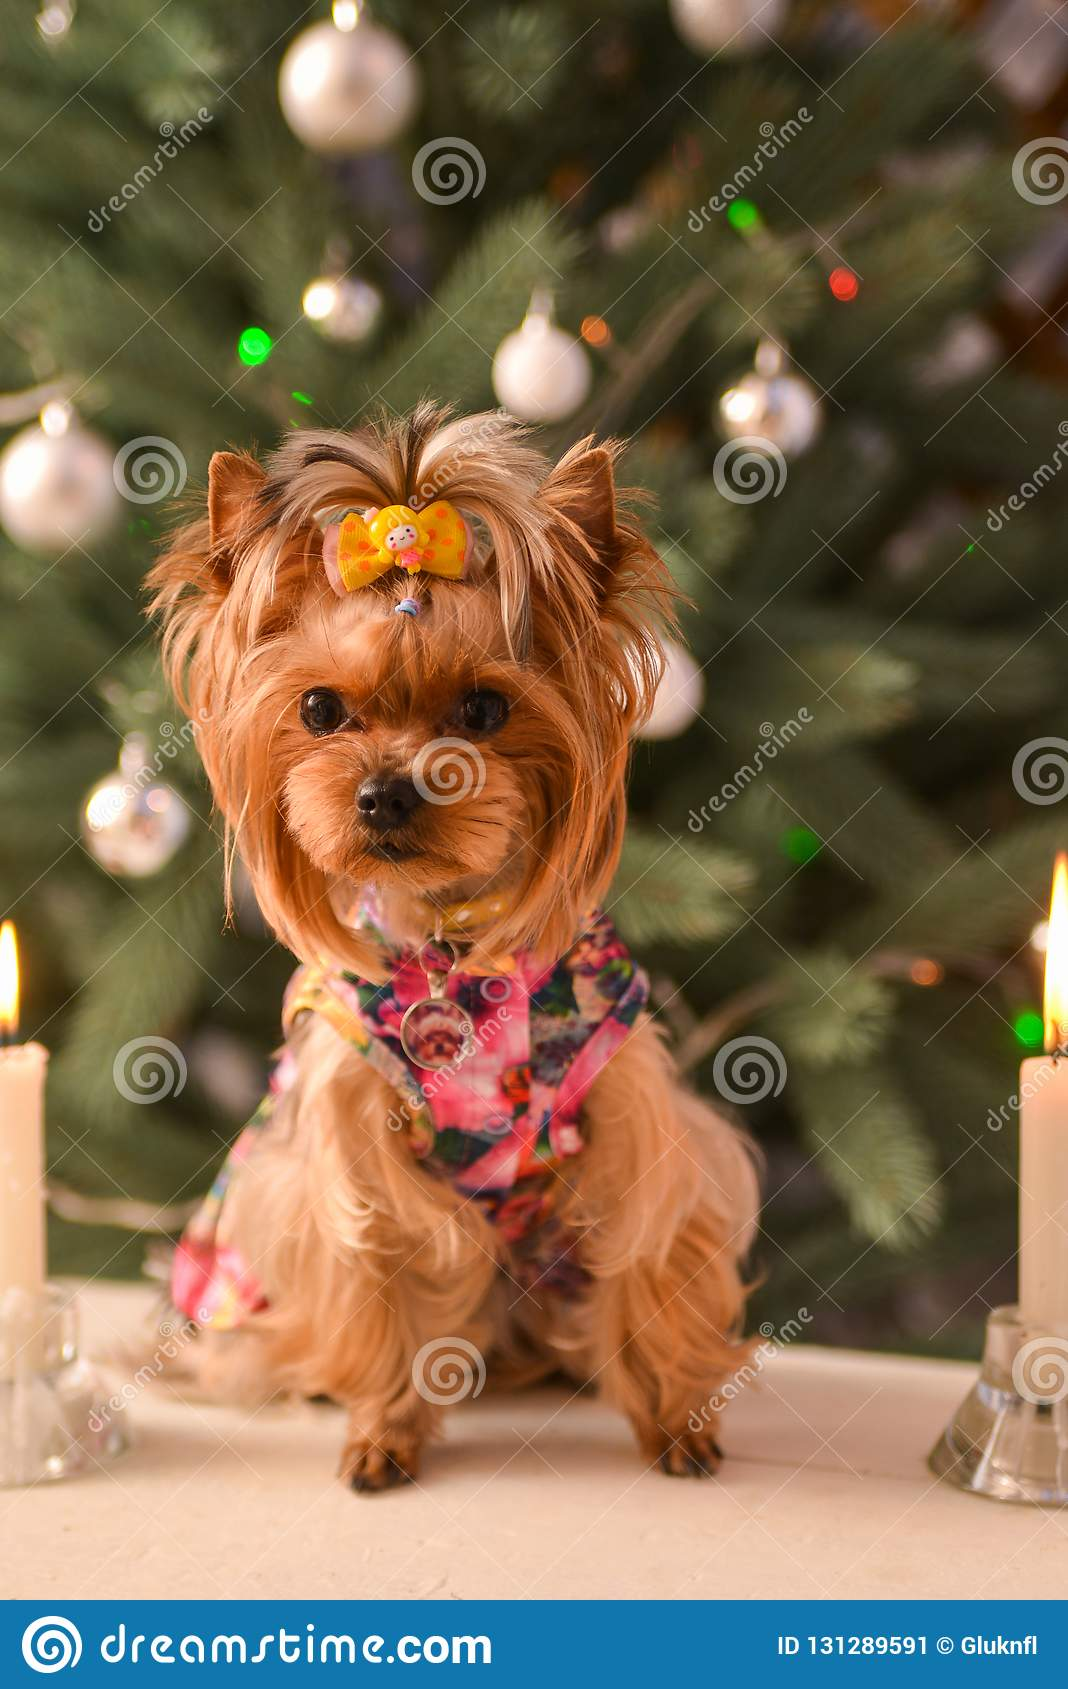 Yorkshire terrier, a bit and a lovely doggie in a festive Christmas